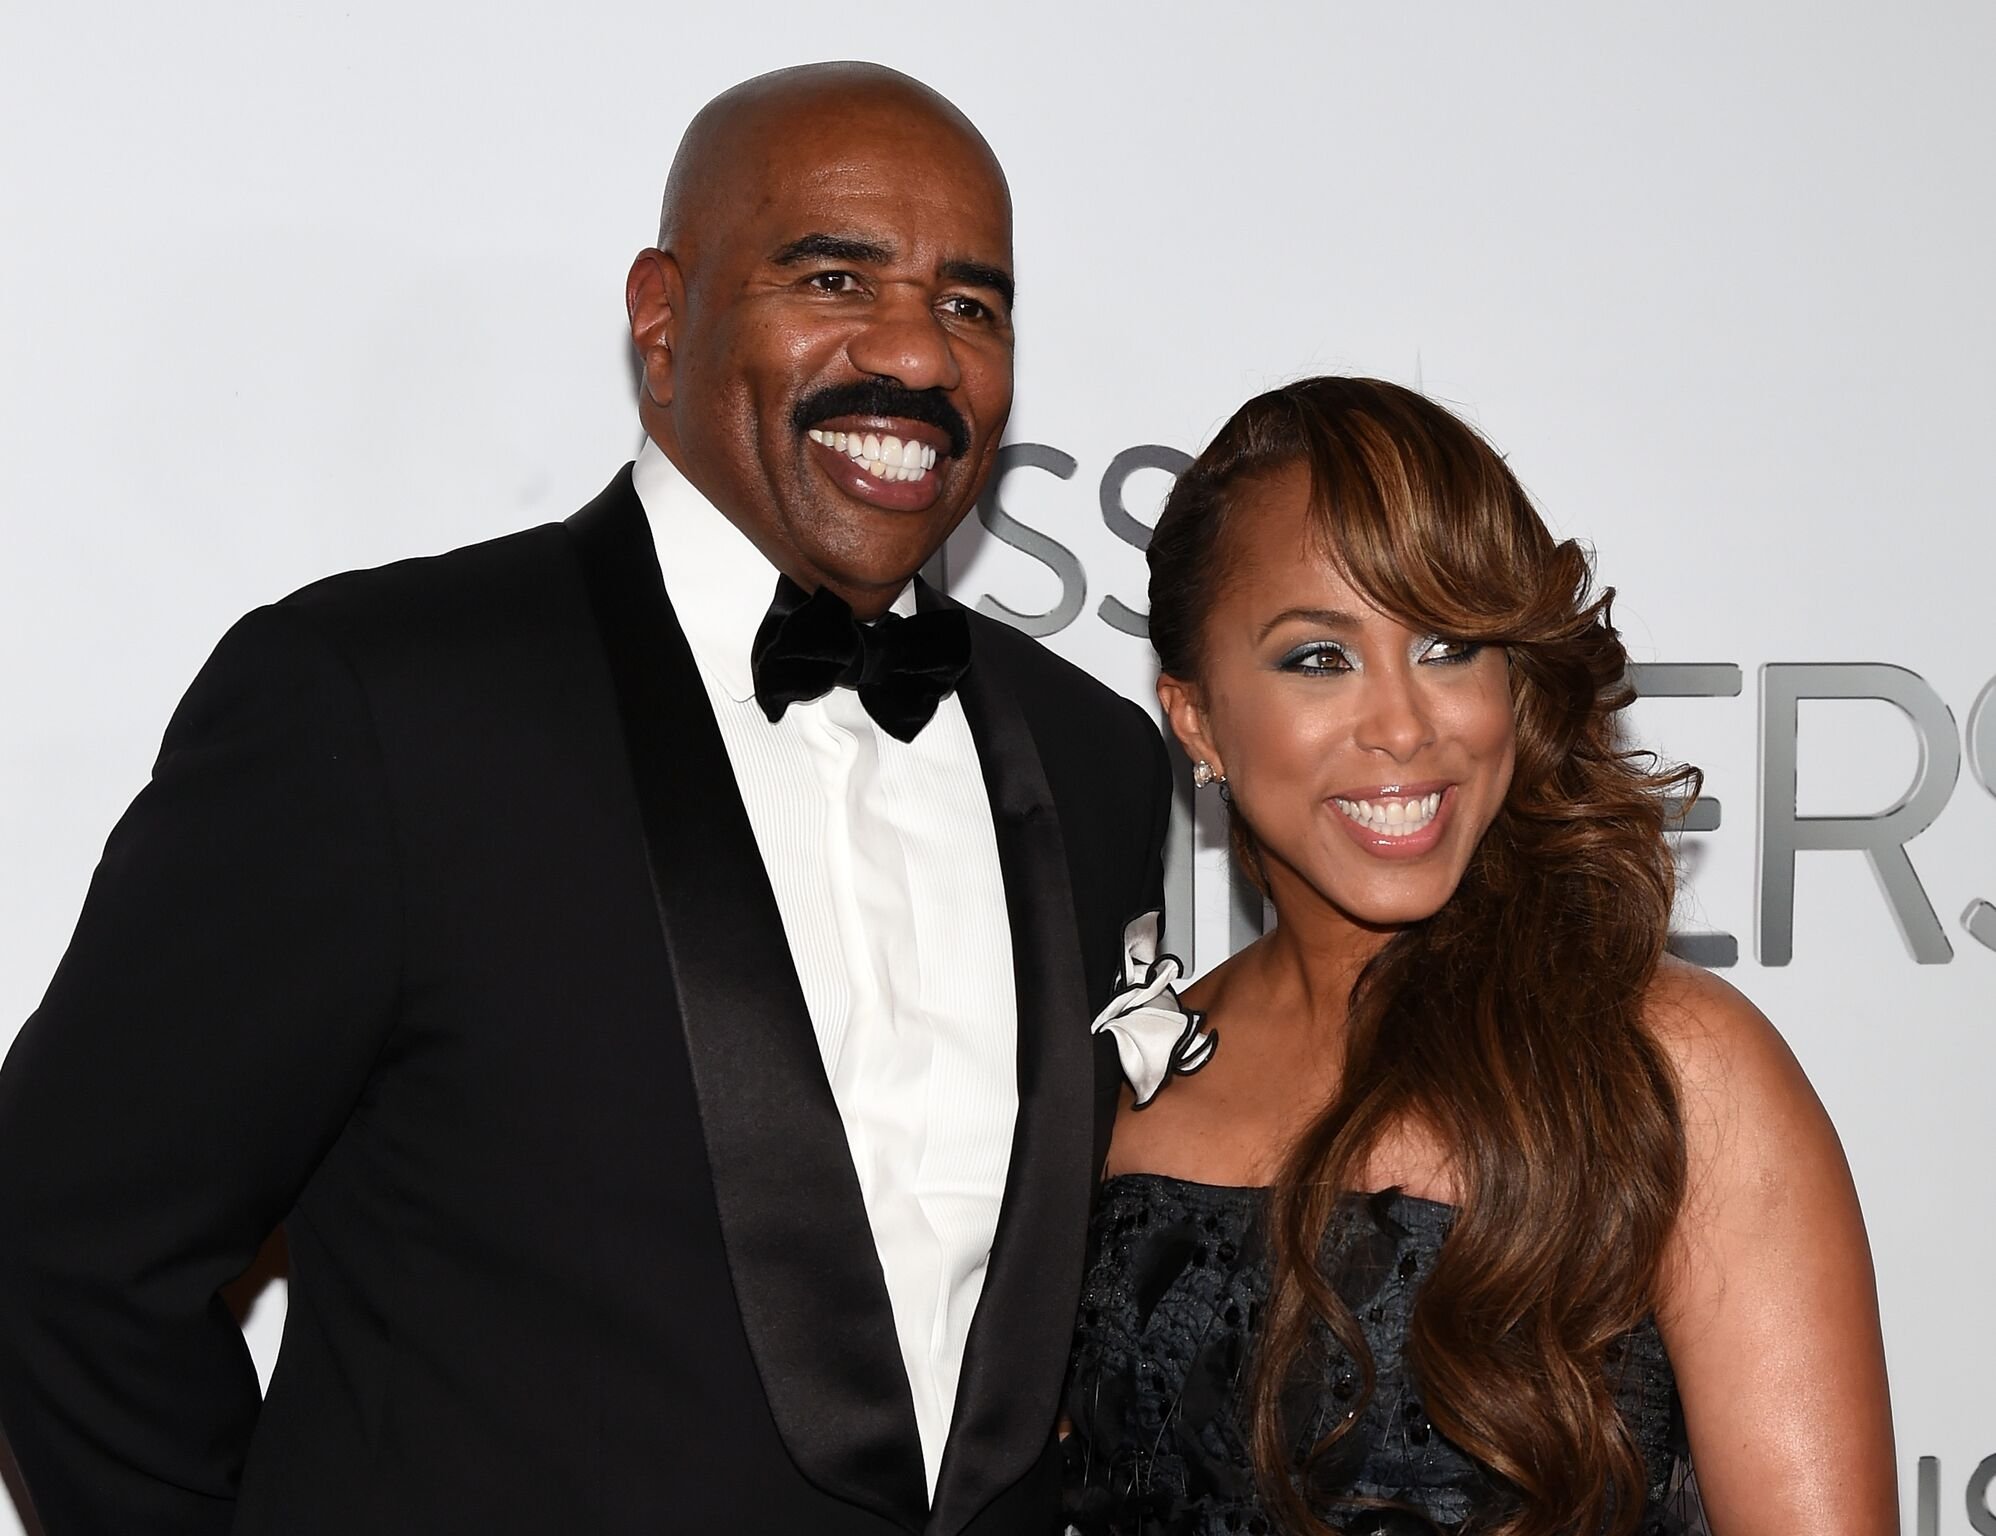 Television personality and host Steve Harvey (L) and his wife Marjorie Harvey attend the 2015 Miss Universe Pageant at Planet Hollywood Resort & Casino on December 20, 2015 | Photo: Getty Images